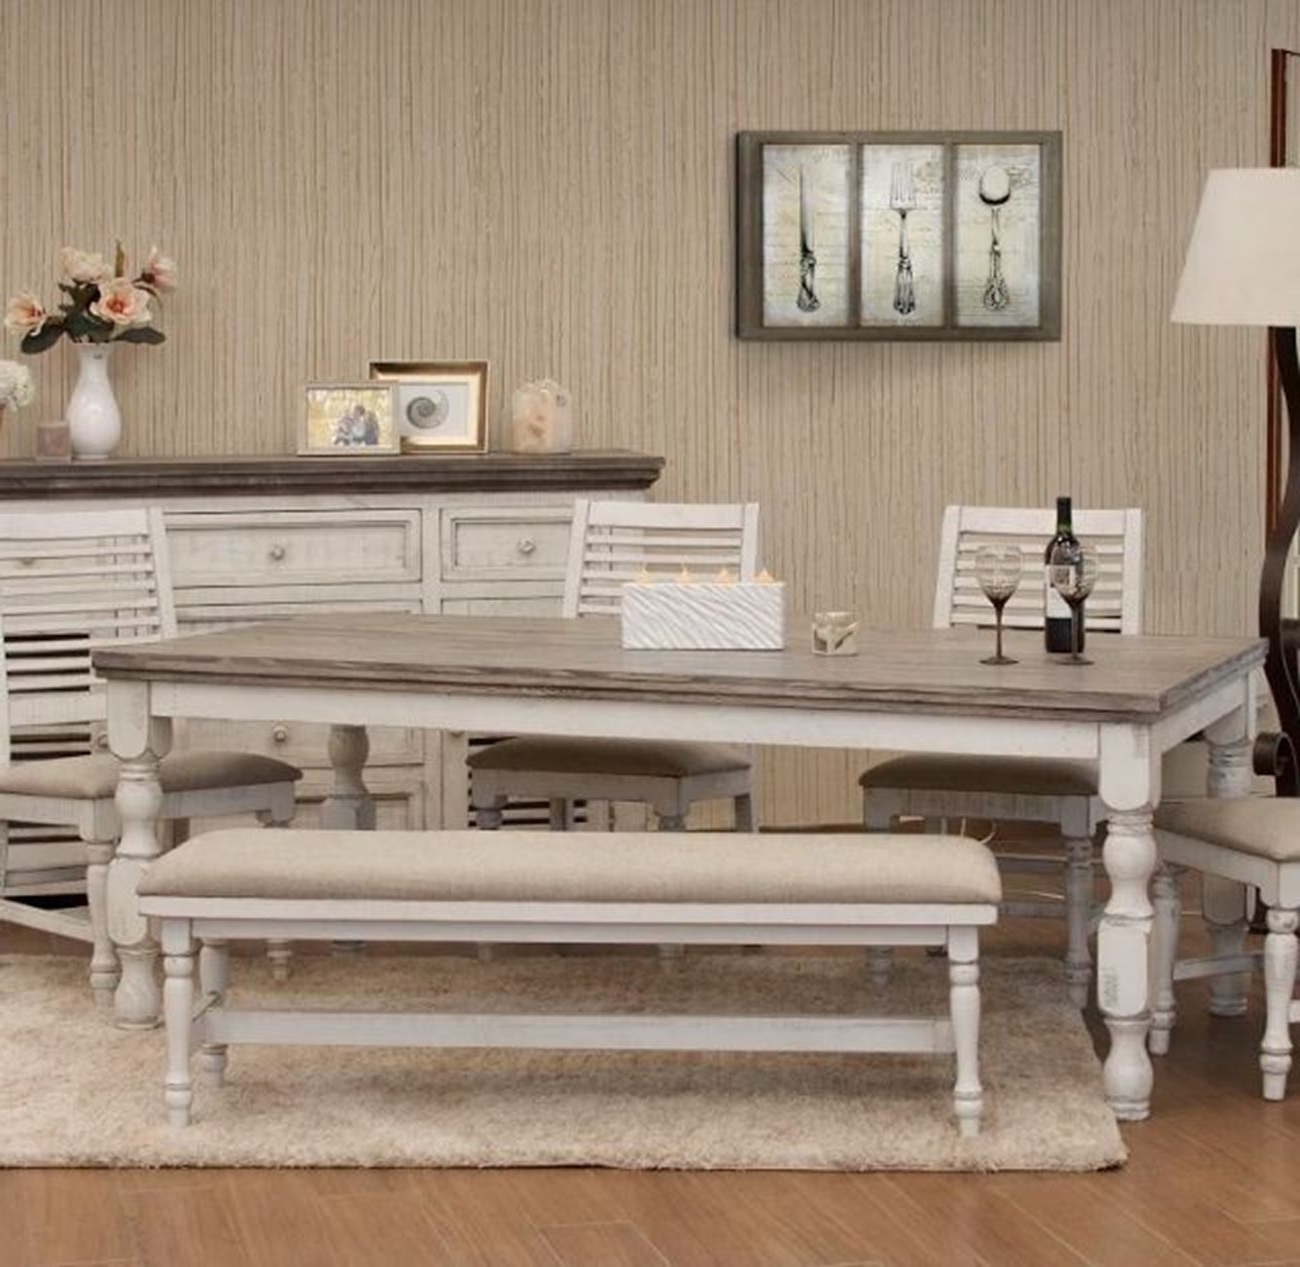 2017 Stone Dining Tables with regard to Stone White Rectangular Dining Table - Woodstock Furniture